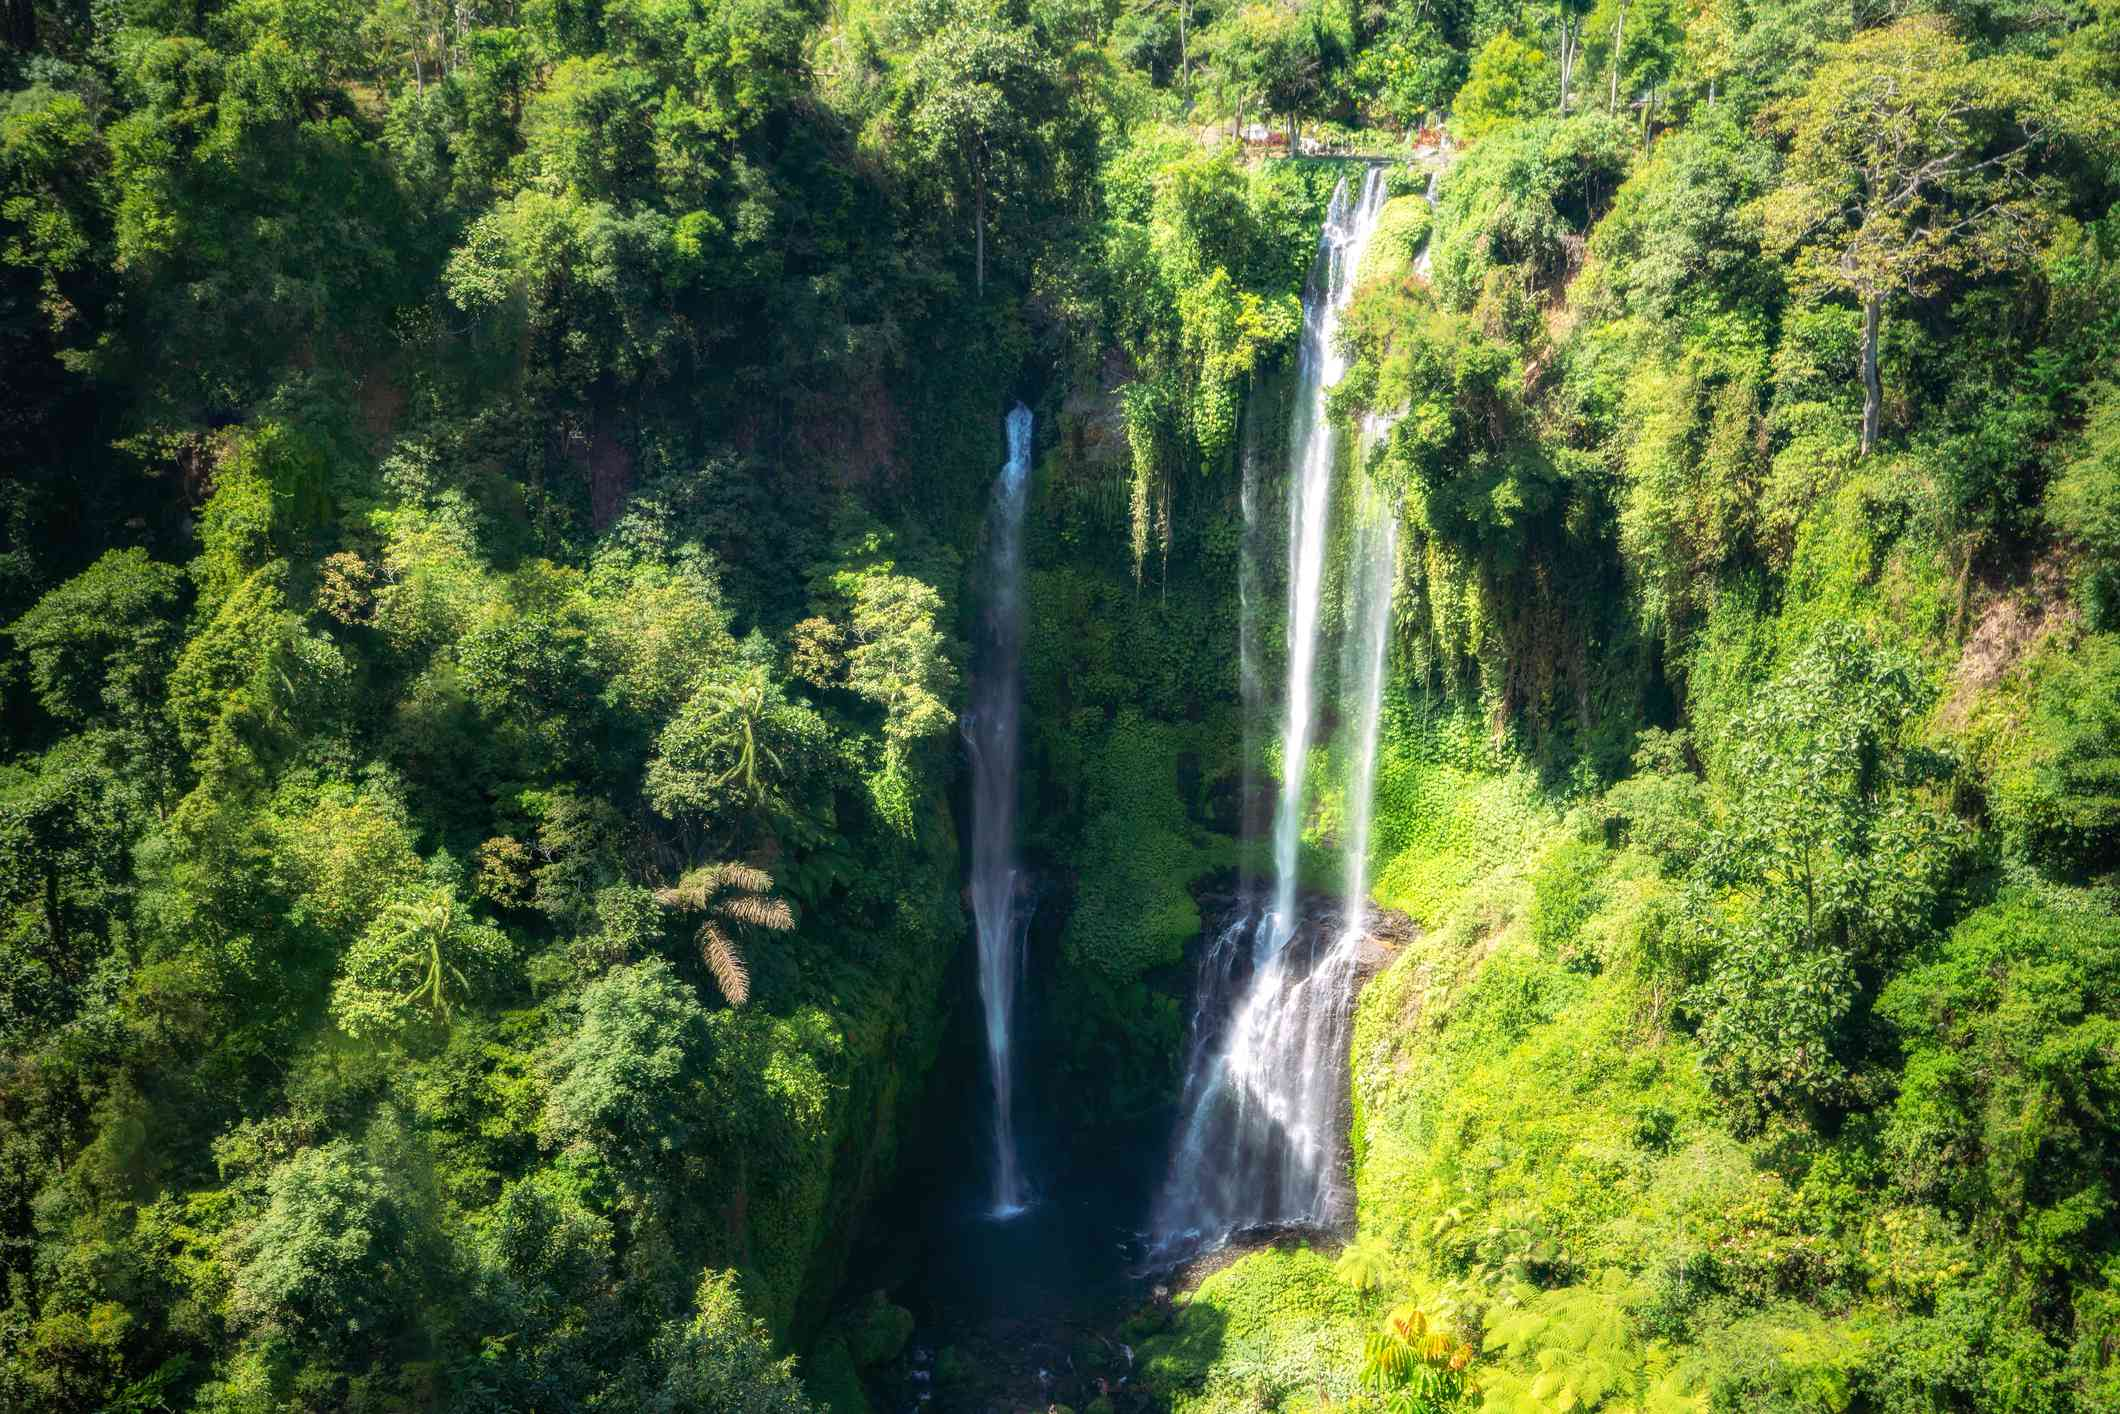 Tropical waterfall view at Sekumpul waterfall in green forest from high view point in Bali island, Indonesia. Embracing the beauty in nature travel nature concept.